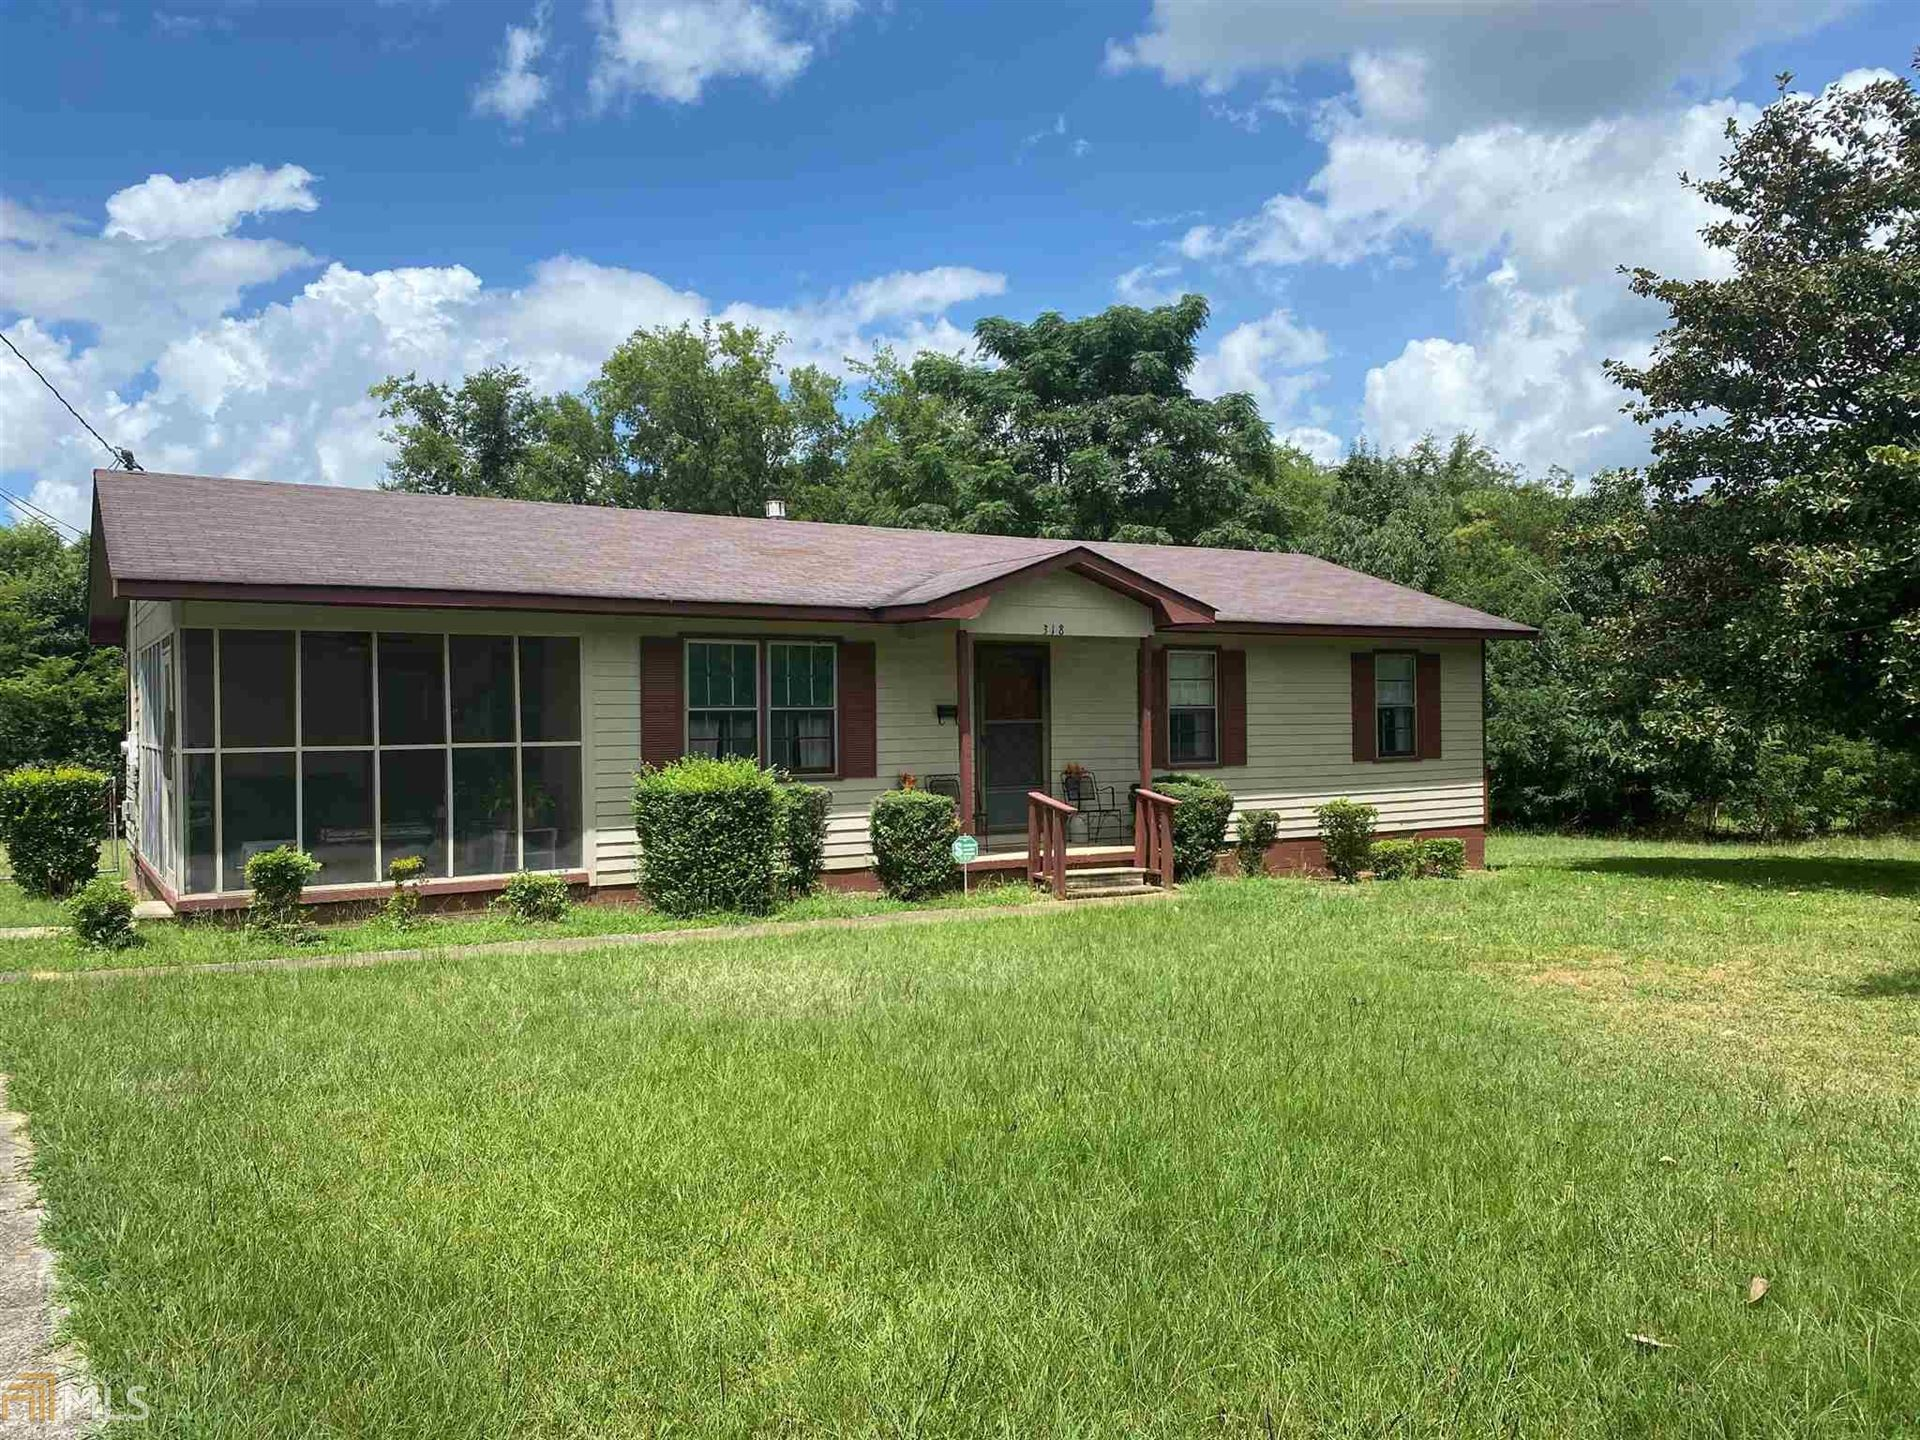 Photo of 318 W Floyd St, Sandersville, GA 31082 (MLS # 8833432)